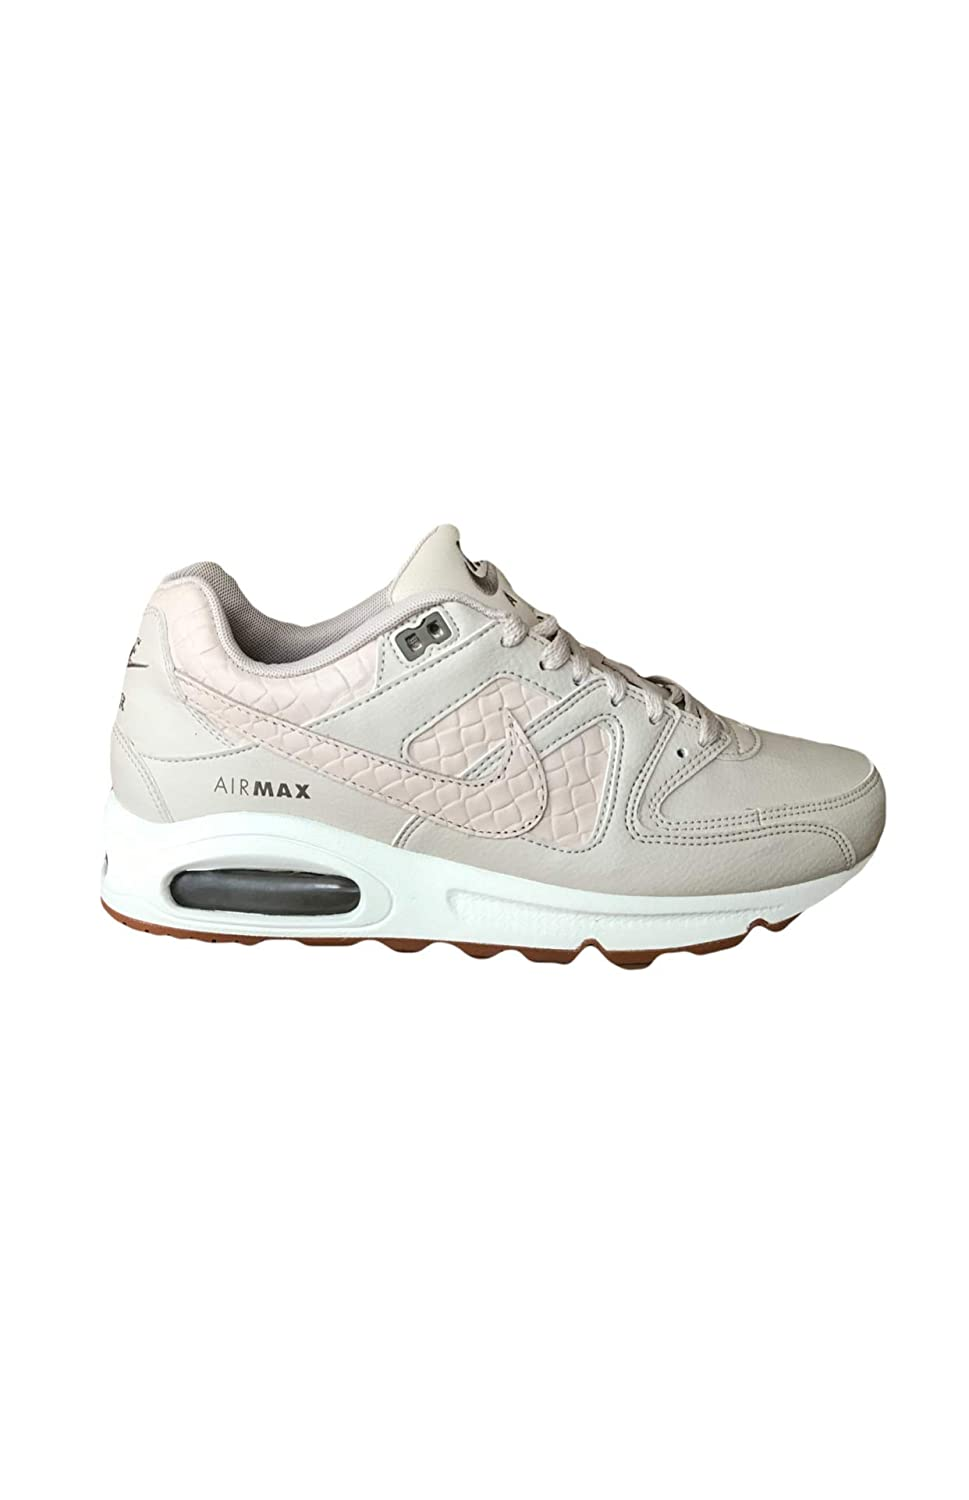 7bfcf272ee Nike Women's Wmns Air Max Command PRM Short Long Boots, WHITE/BLACK-WOLF  GREY, 11: Amazon.co.uk: Sports & Outdoors